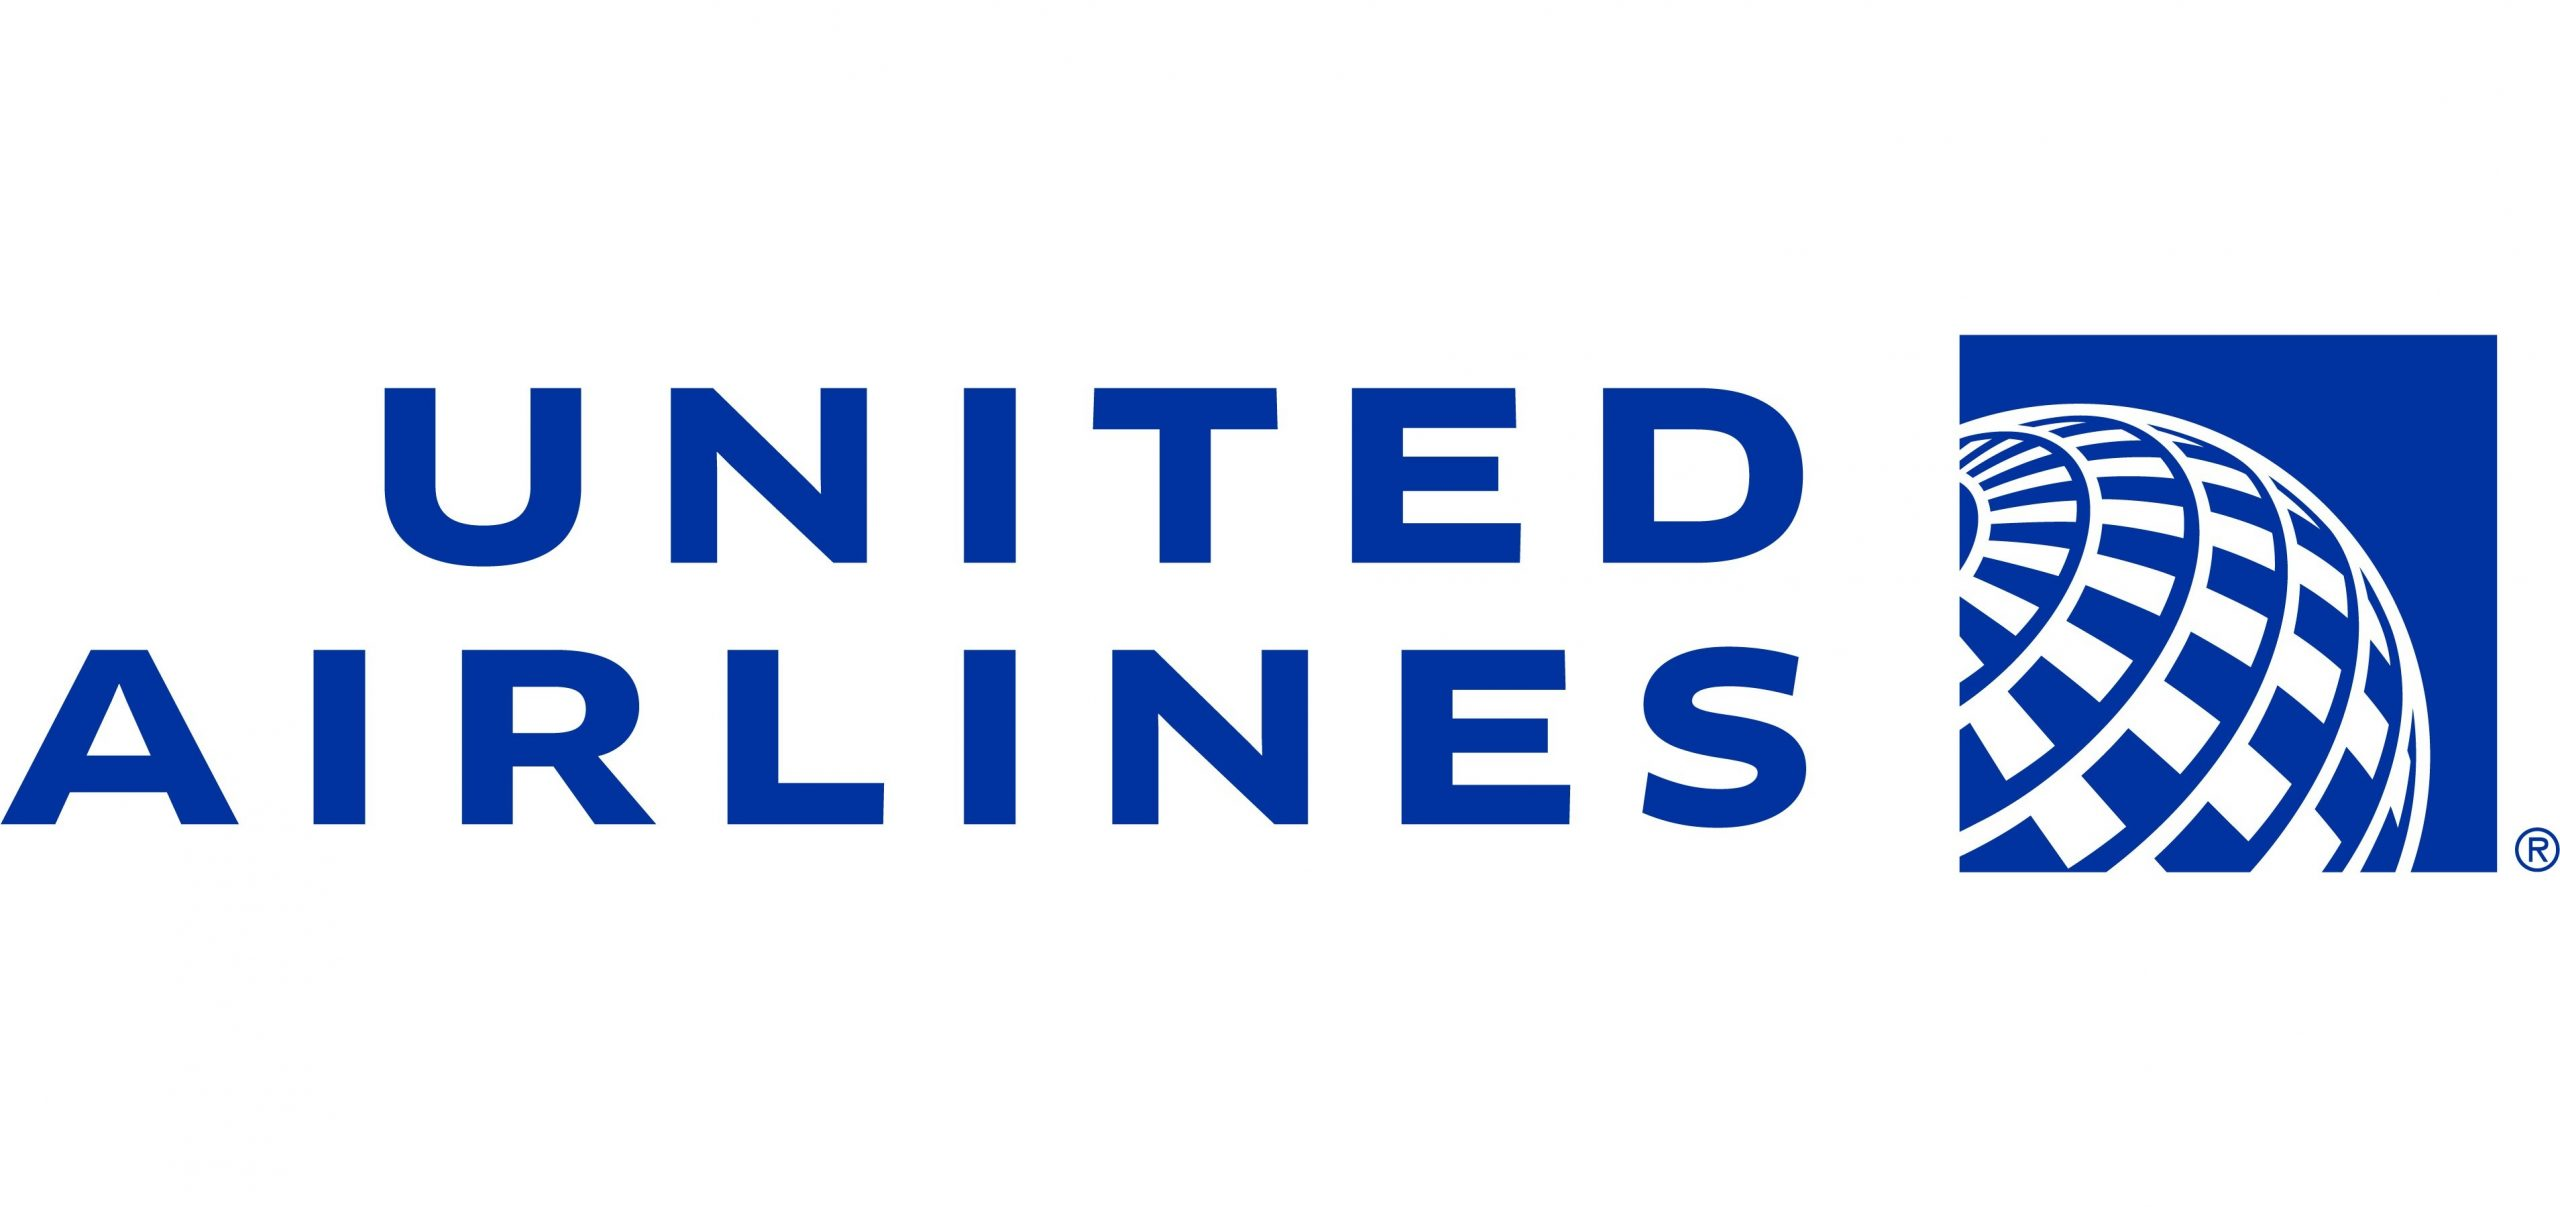 United Airlines airline company calculated losses caused by COVID-19 pandemic